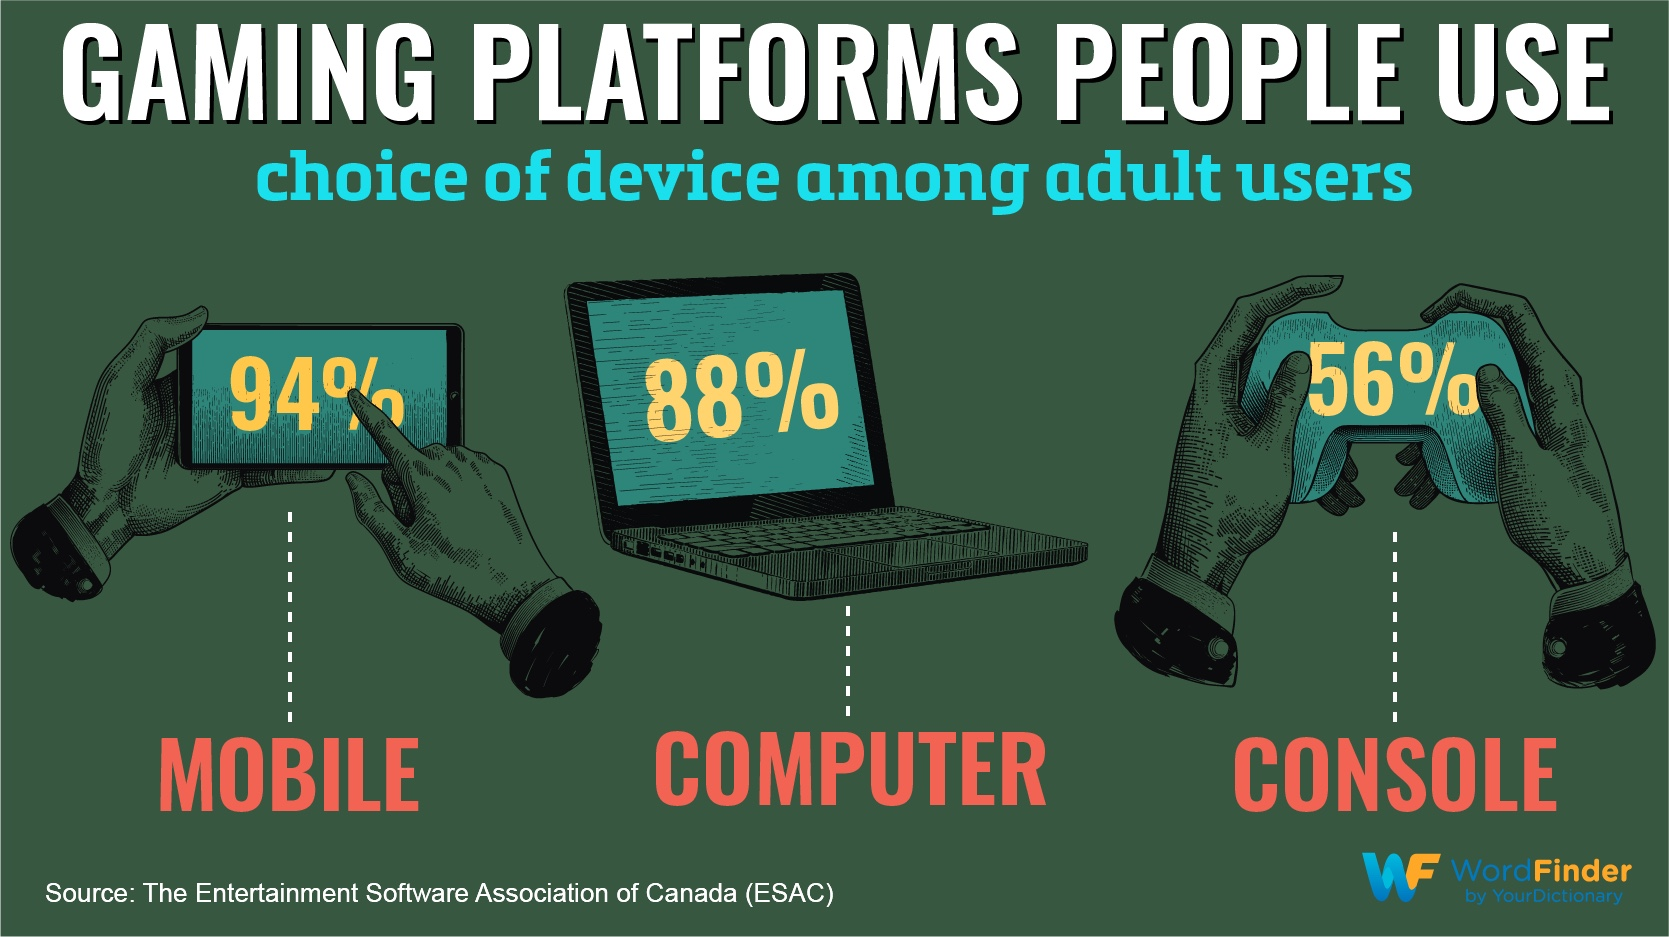 gaming platforms people use mobile computer console infographic